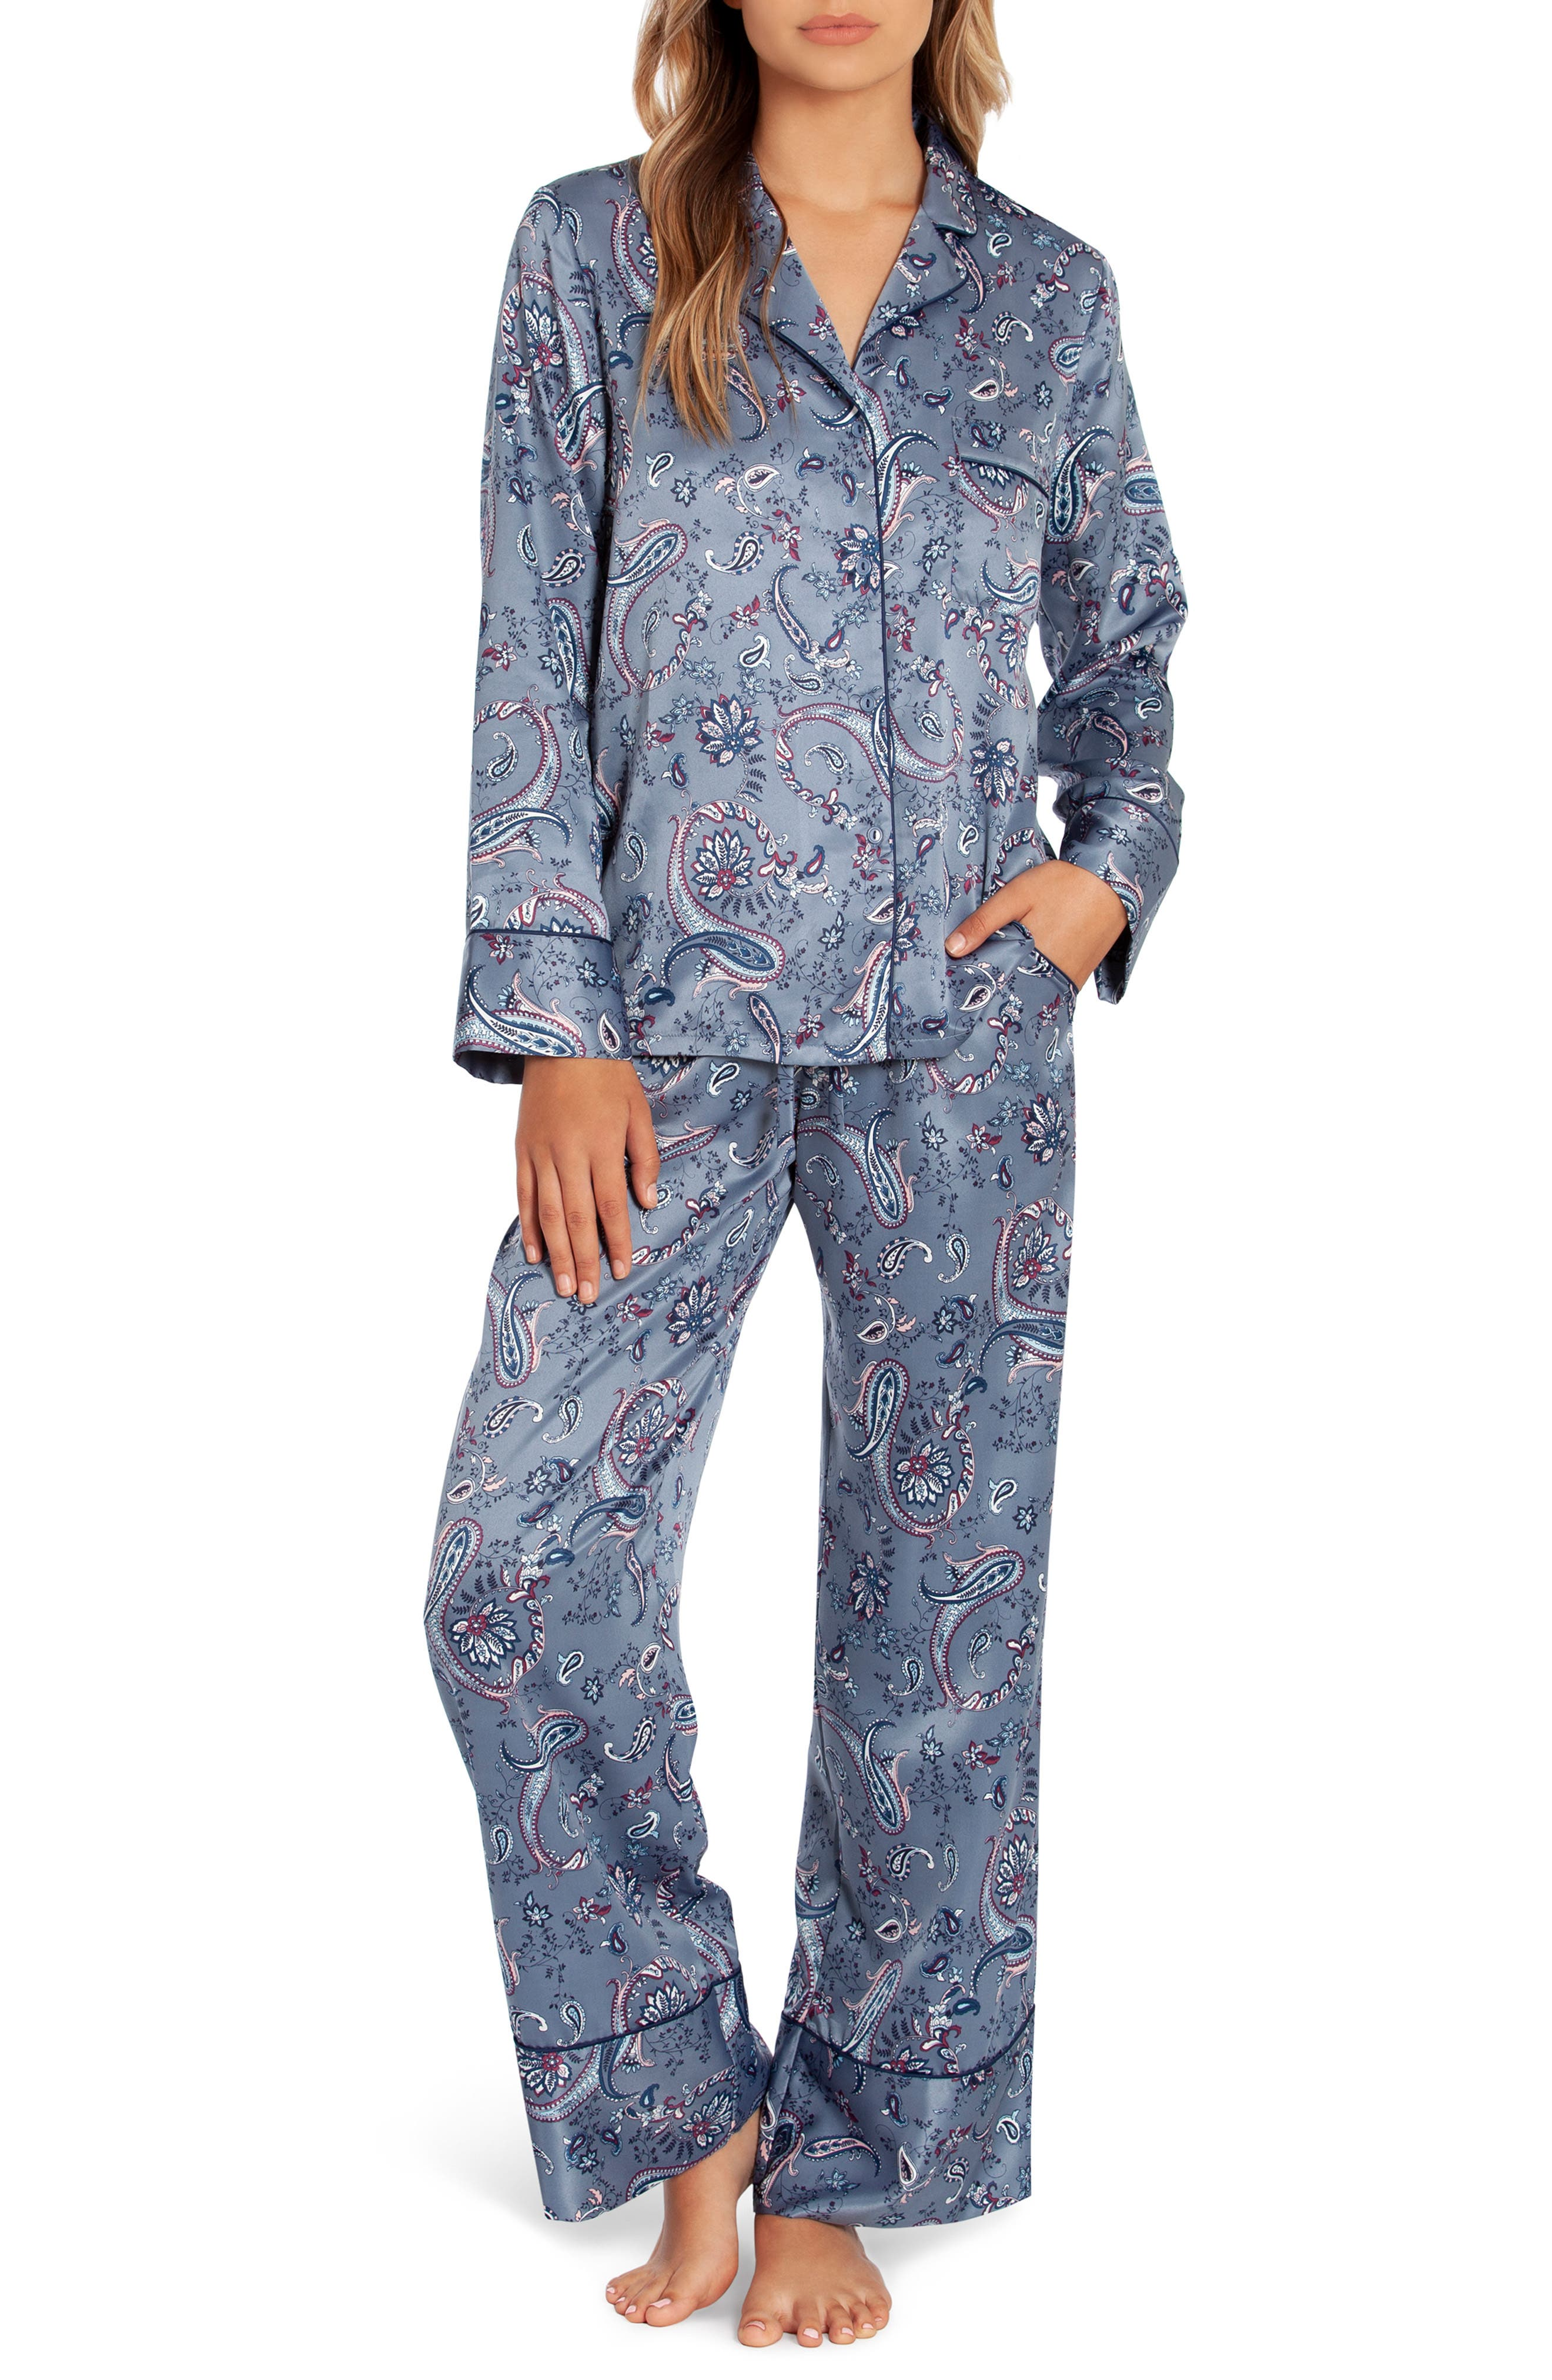 In Bloom by Jonquil Whistler Pajamas